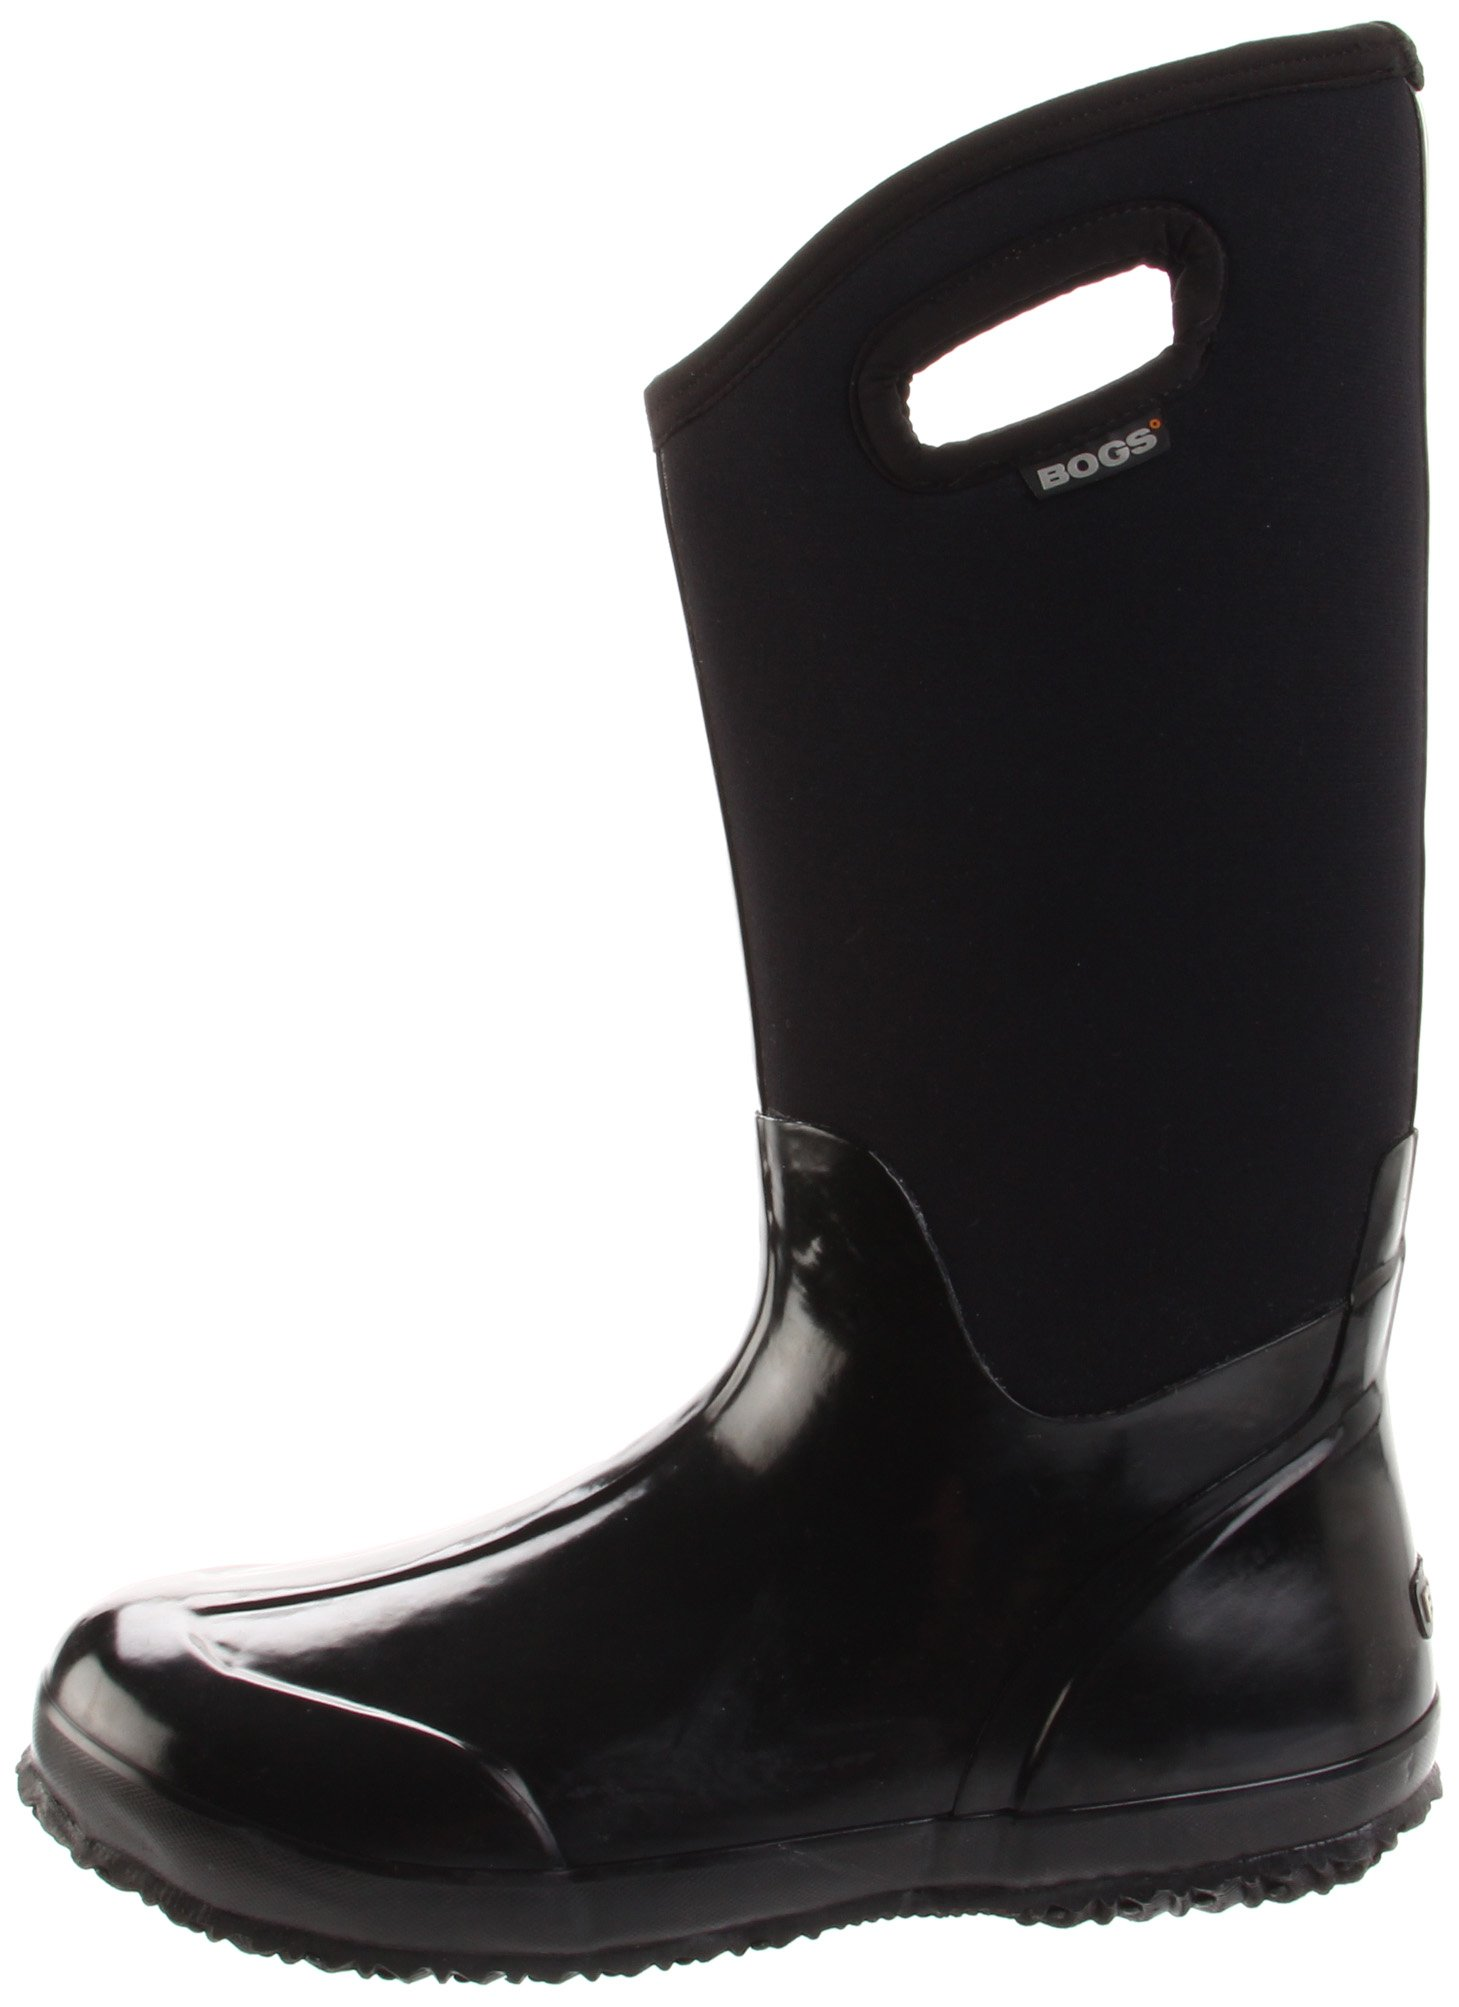 Bogs Women's Classic High Handle Waterproof Insulated Boot,Black Smooth,7 M US by Bogs (Image #5)